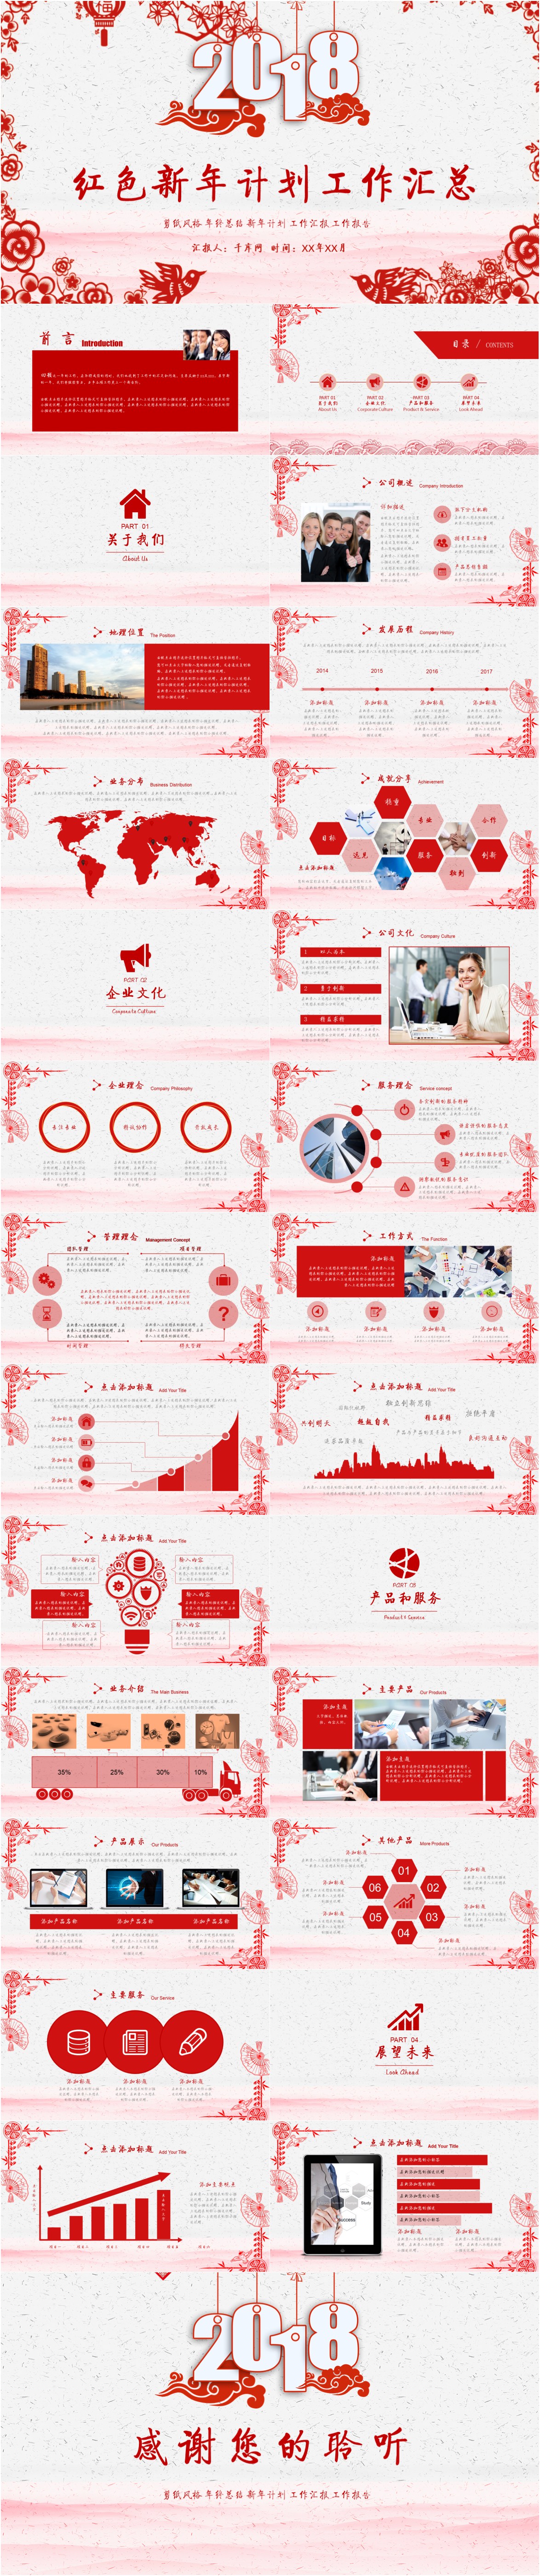 Marvelous Paper Cutting Red New Year Plan Work Summary PPT Template